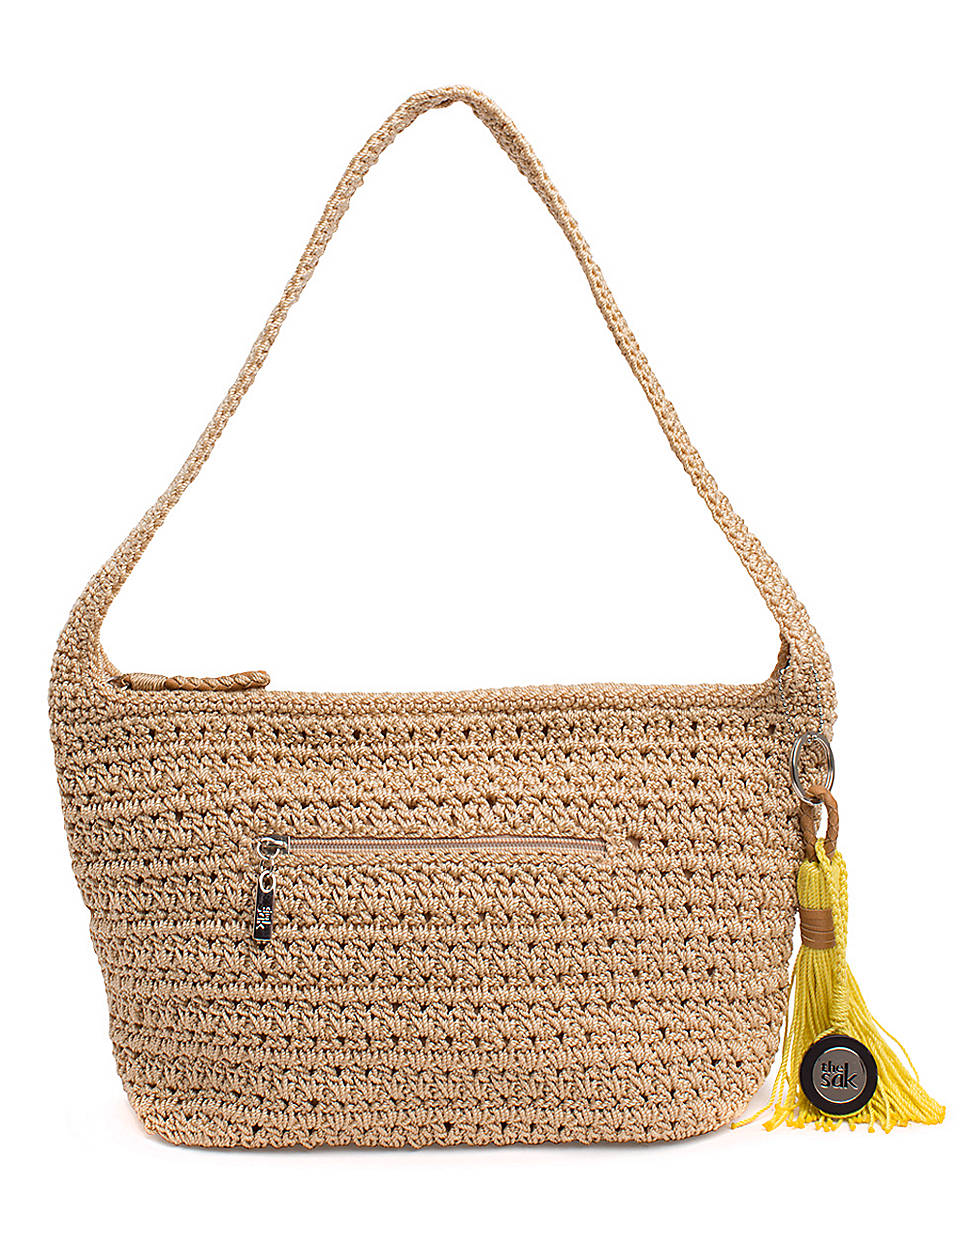 The Sak Bags Crochet : The Sak Casual Classics Crochet Hobo Bag in Beige (bamboo) Lyst